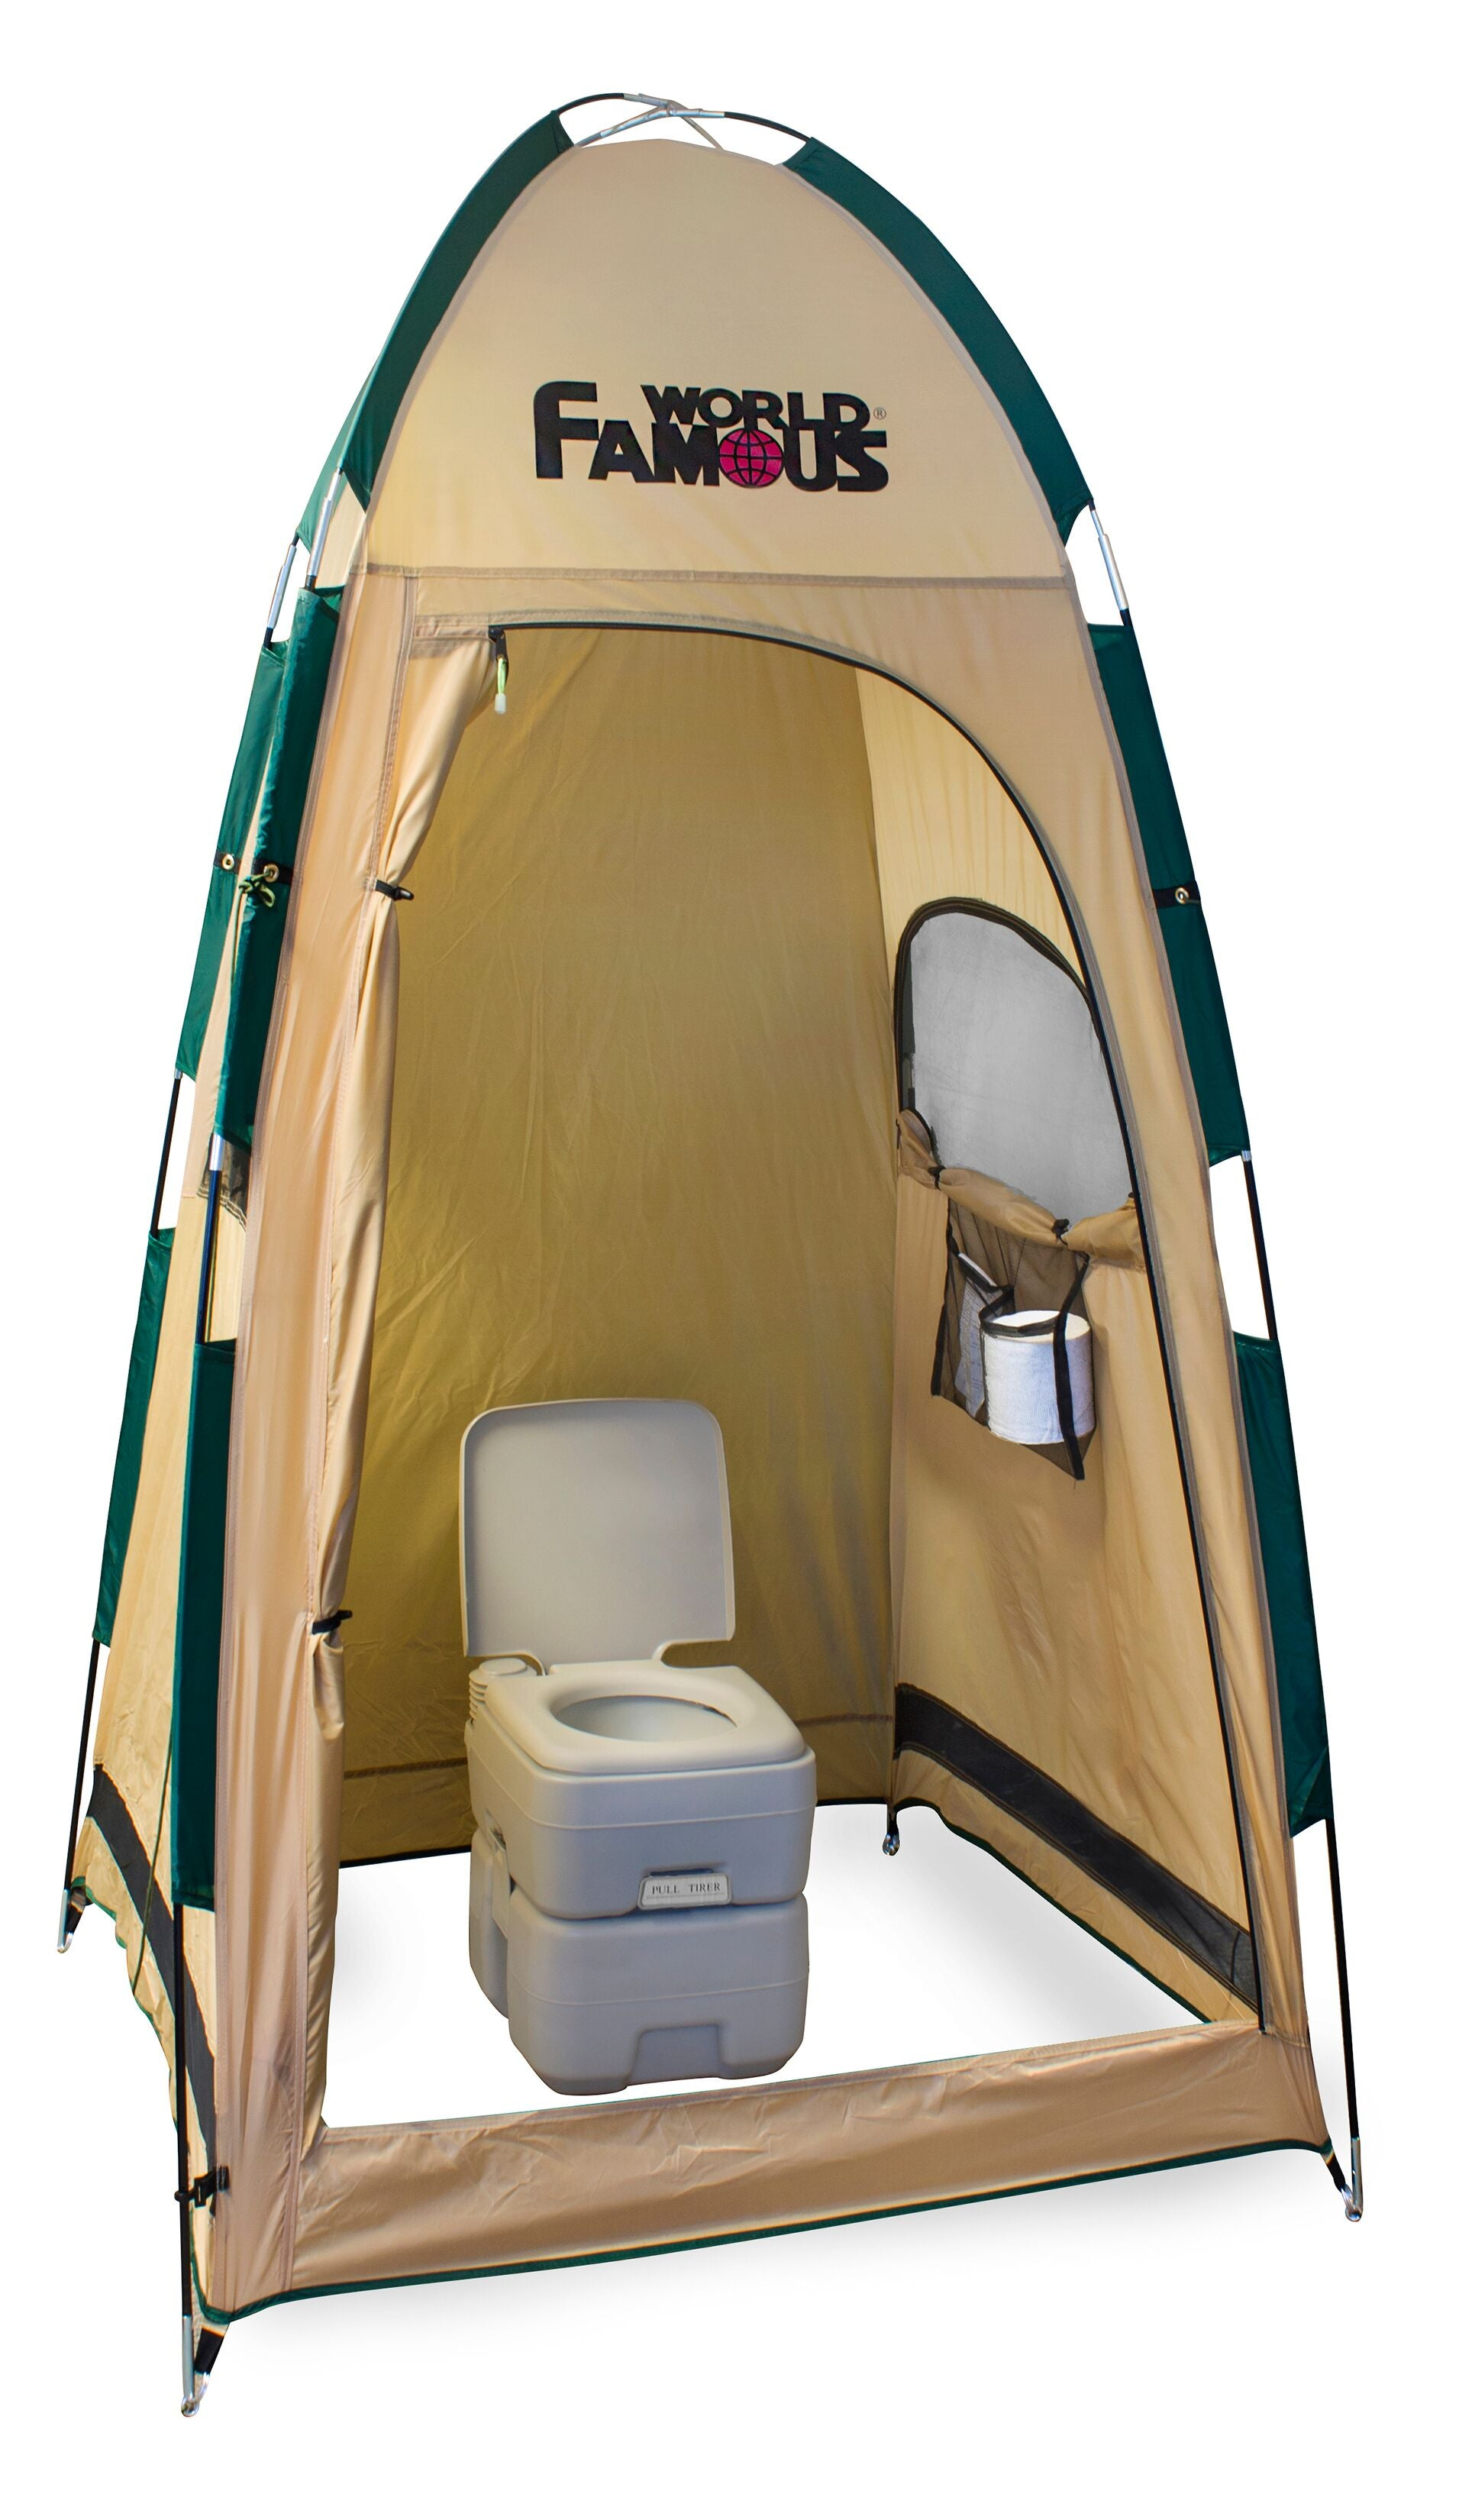 World Famous Porta Privy Privacy Bathroom Tent Shelter Scouttech